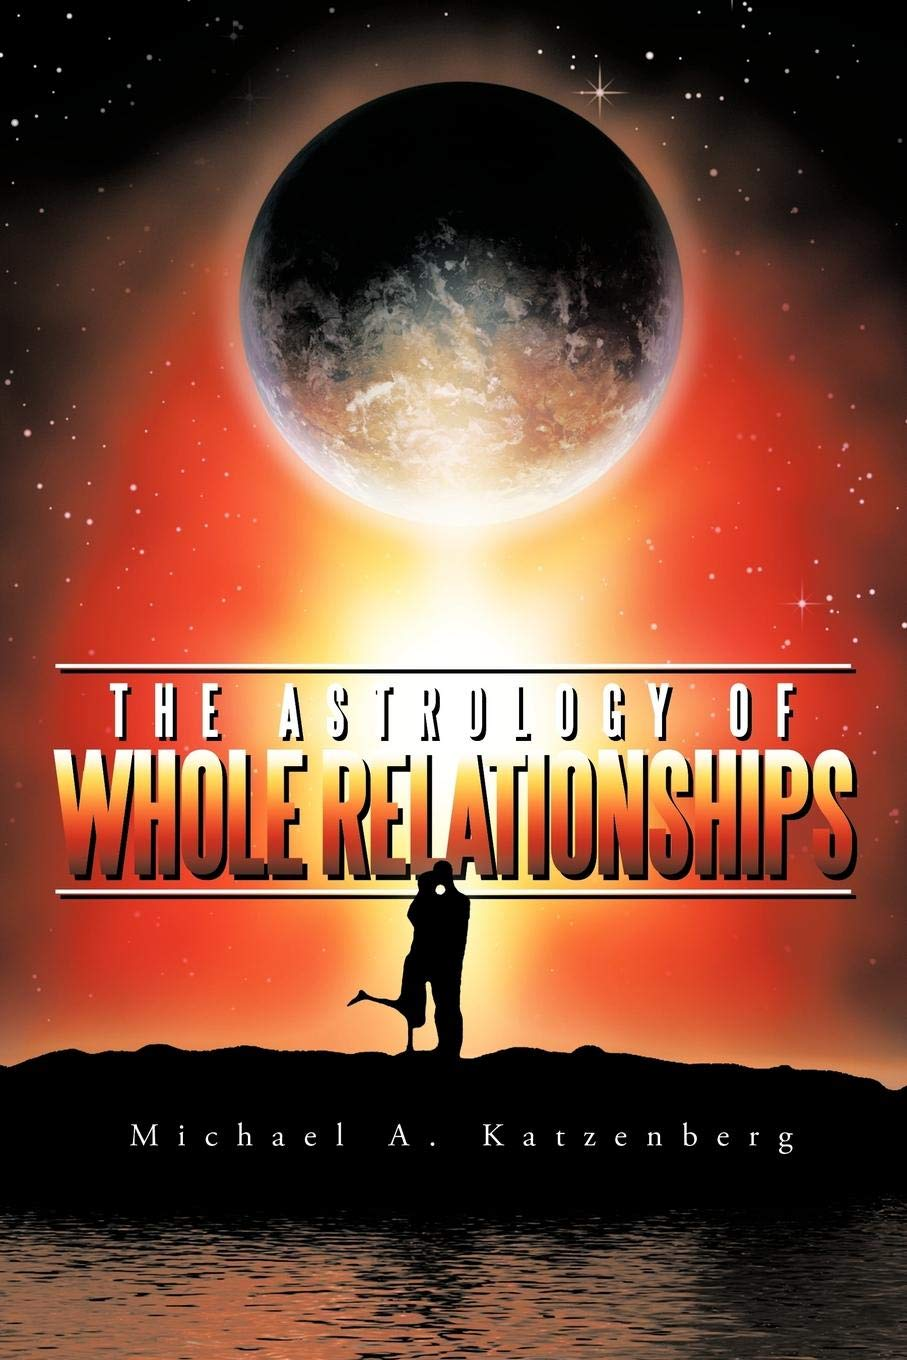 The Astrology of Whole Relationships: Michael A  Katzenberg